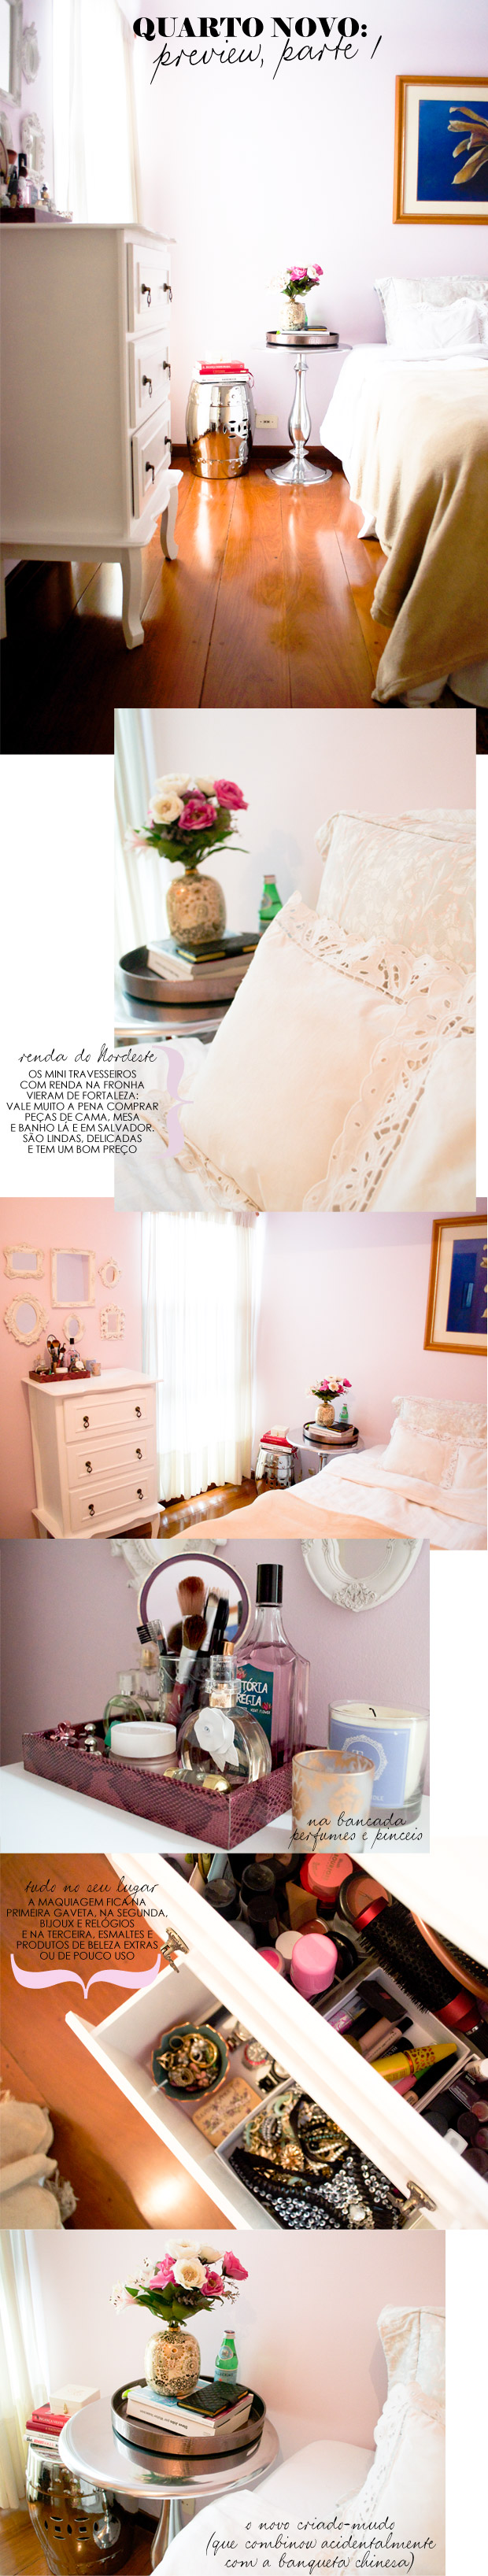 living-gazette-barbara-resende-makeover-quarto